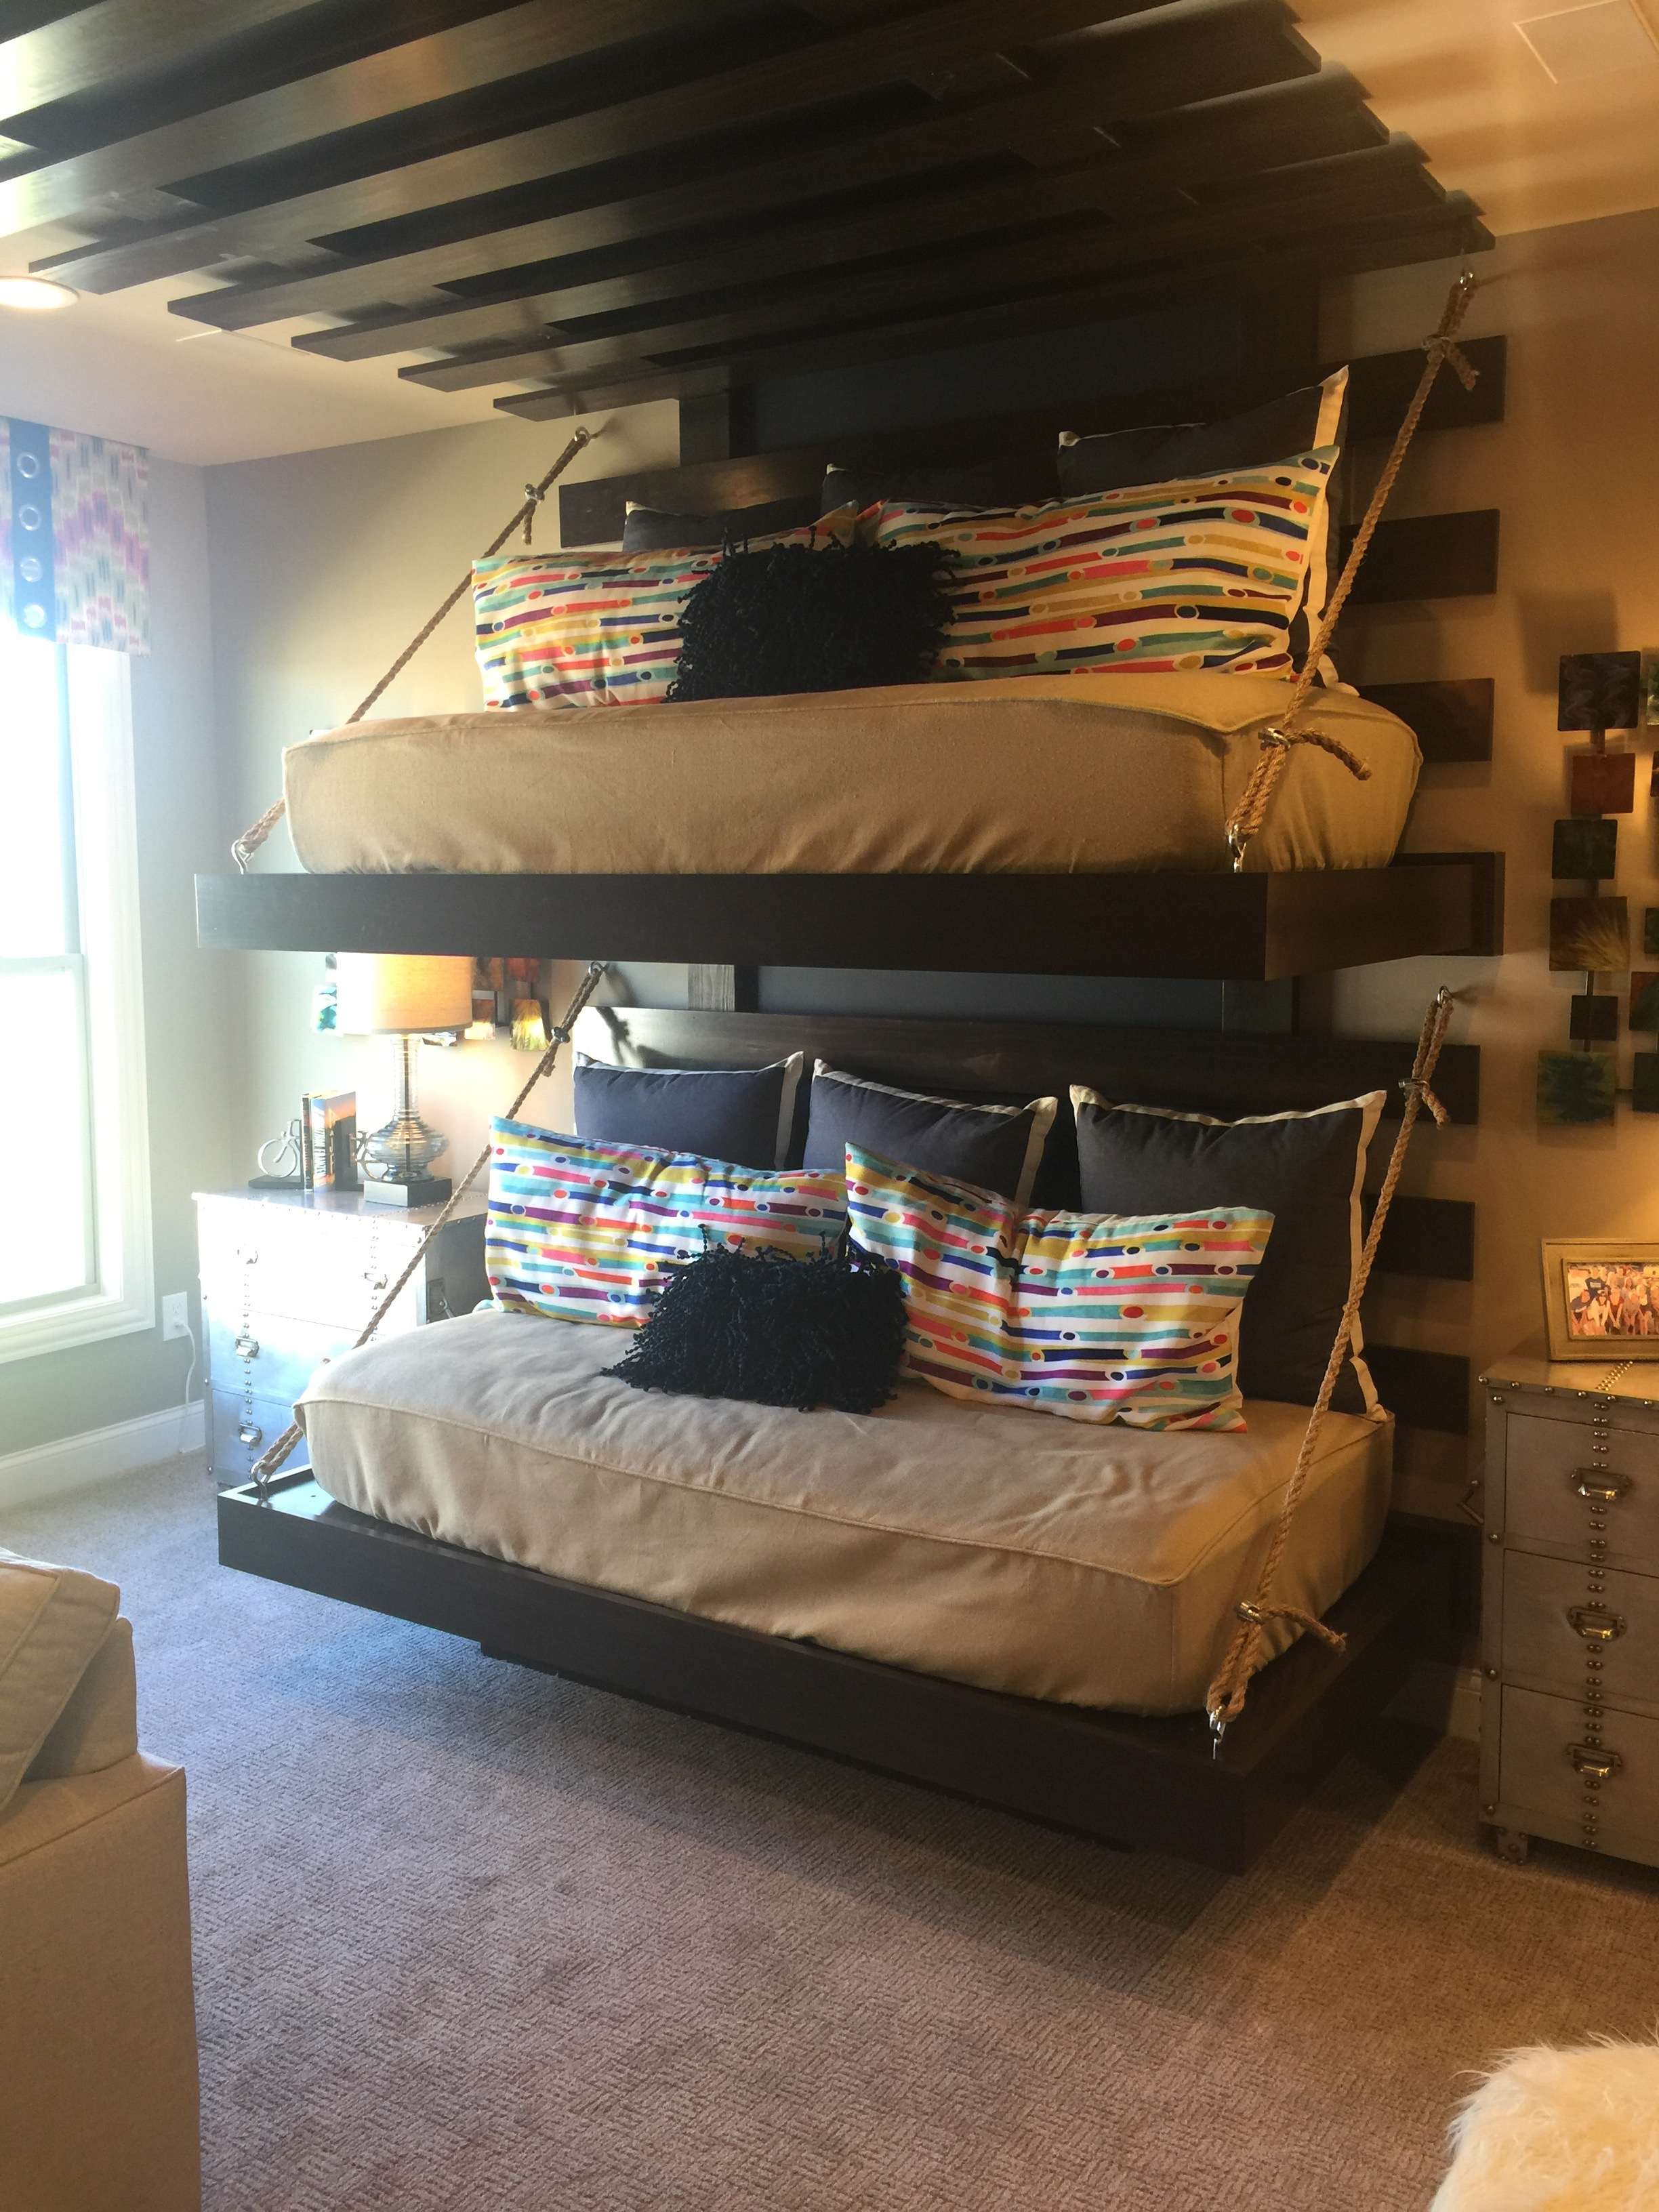 Alternative to traditional bunk beds?? Actually, this is a bonus room above the kitchen area, and was being used as a Media Room. Creative idea ~ and I can see my kids loving the top bunk to hang out and read a good book or write a story.